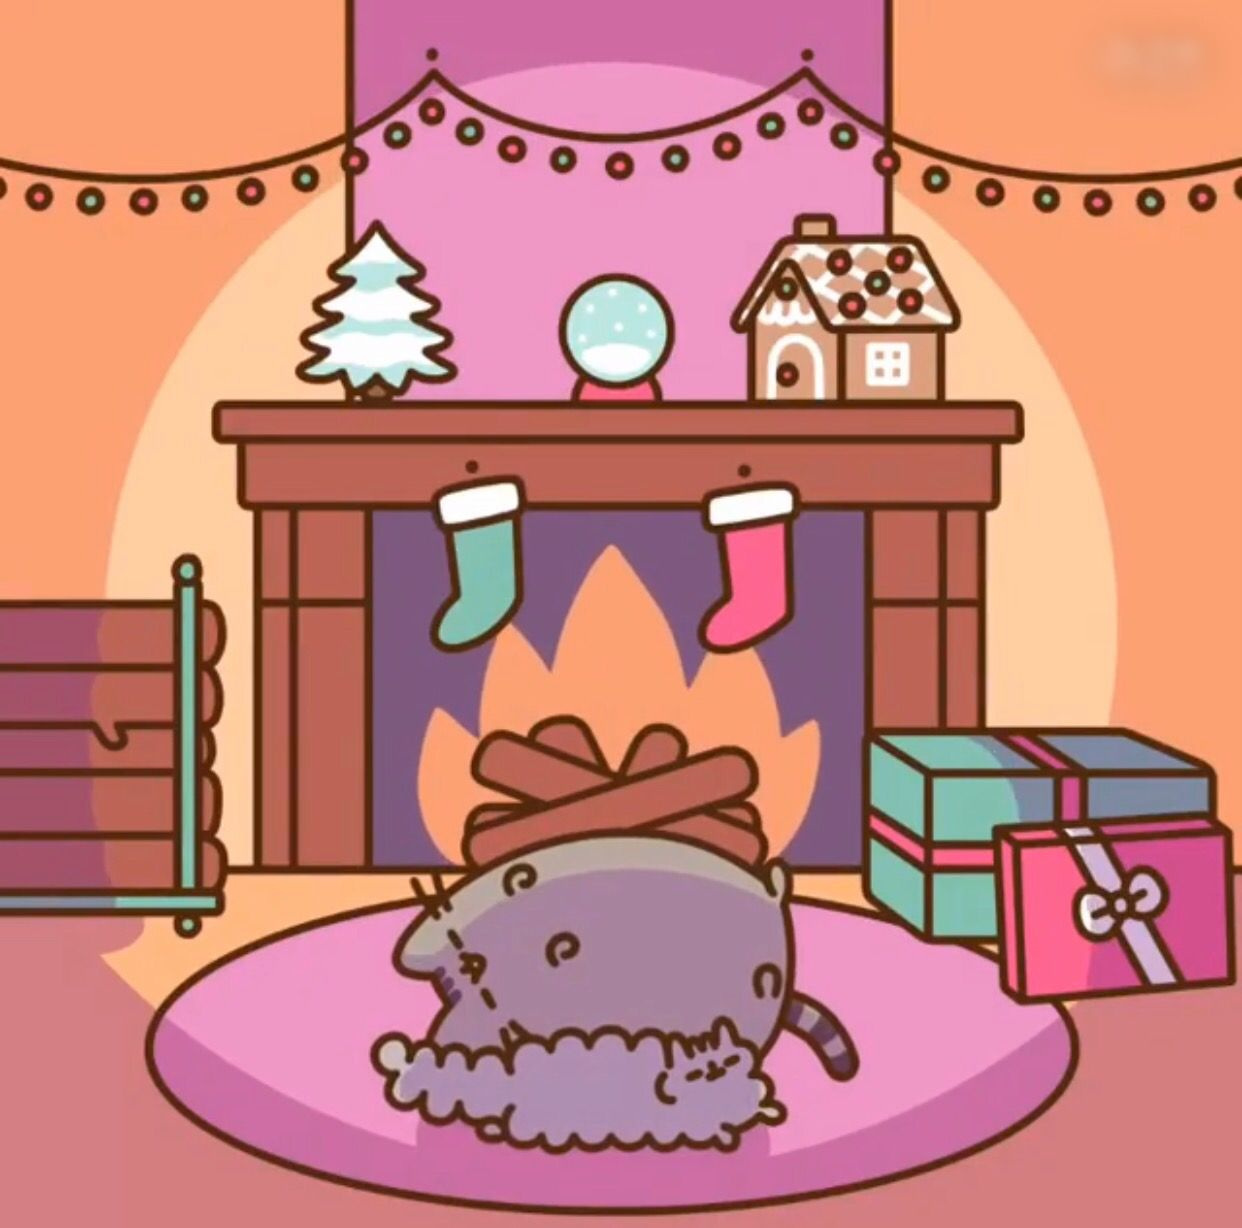 Pusheen and Stormy Pusheen the adorable cat Pinterest